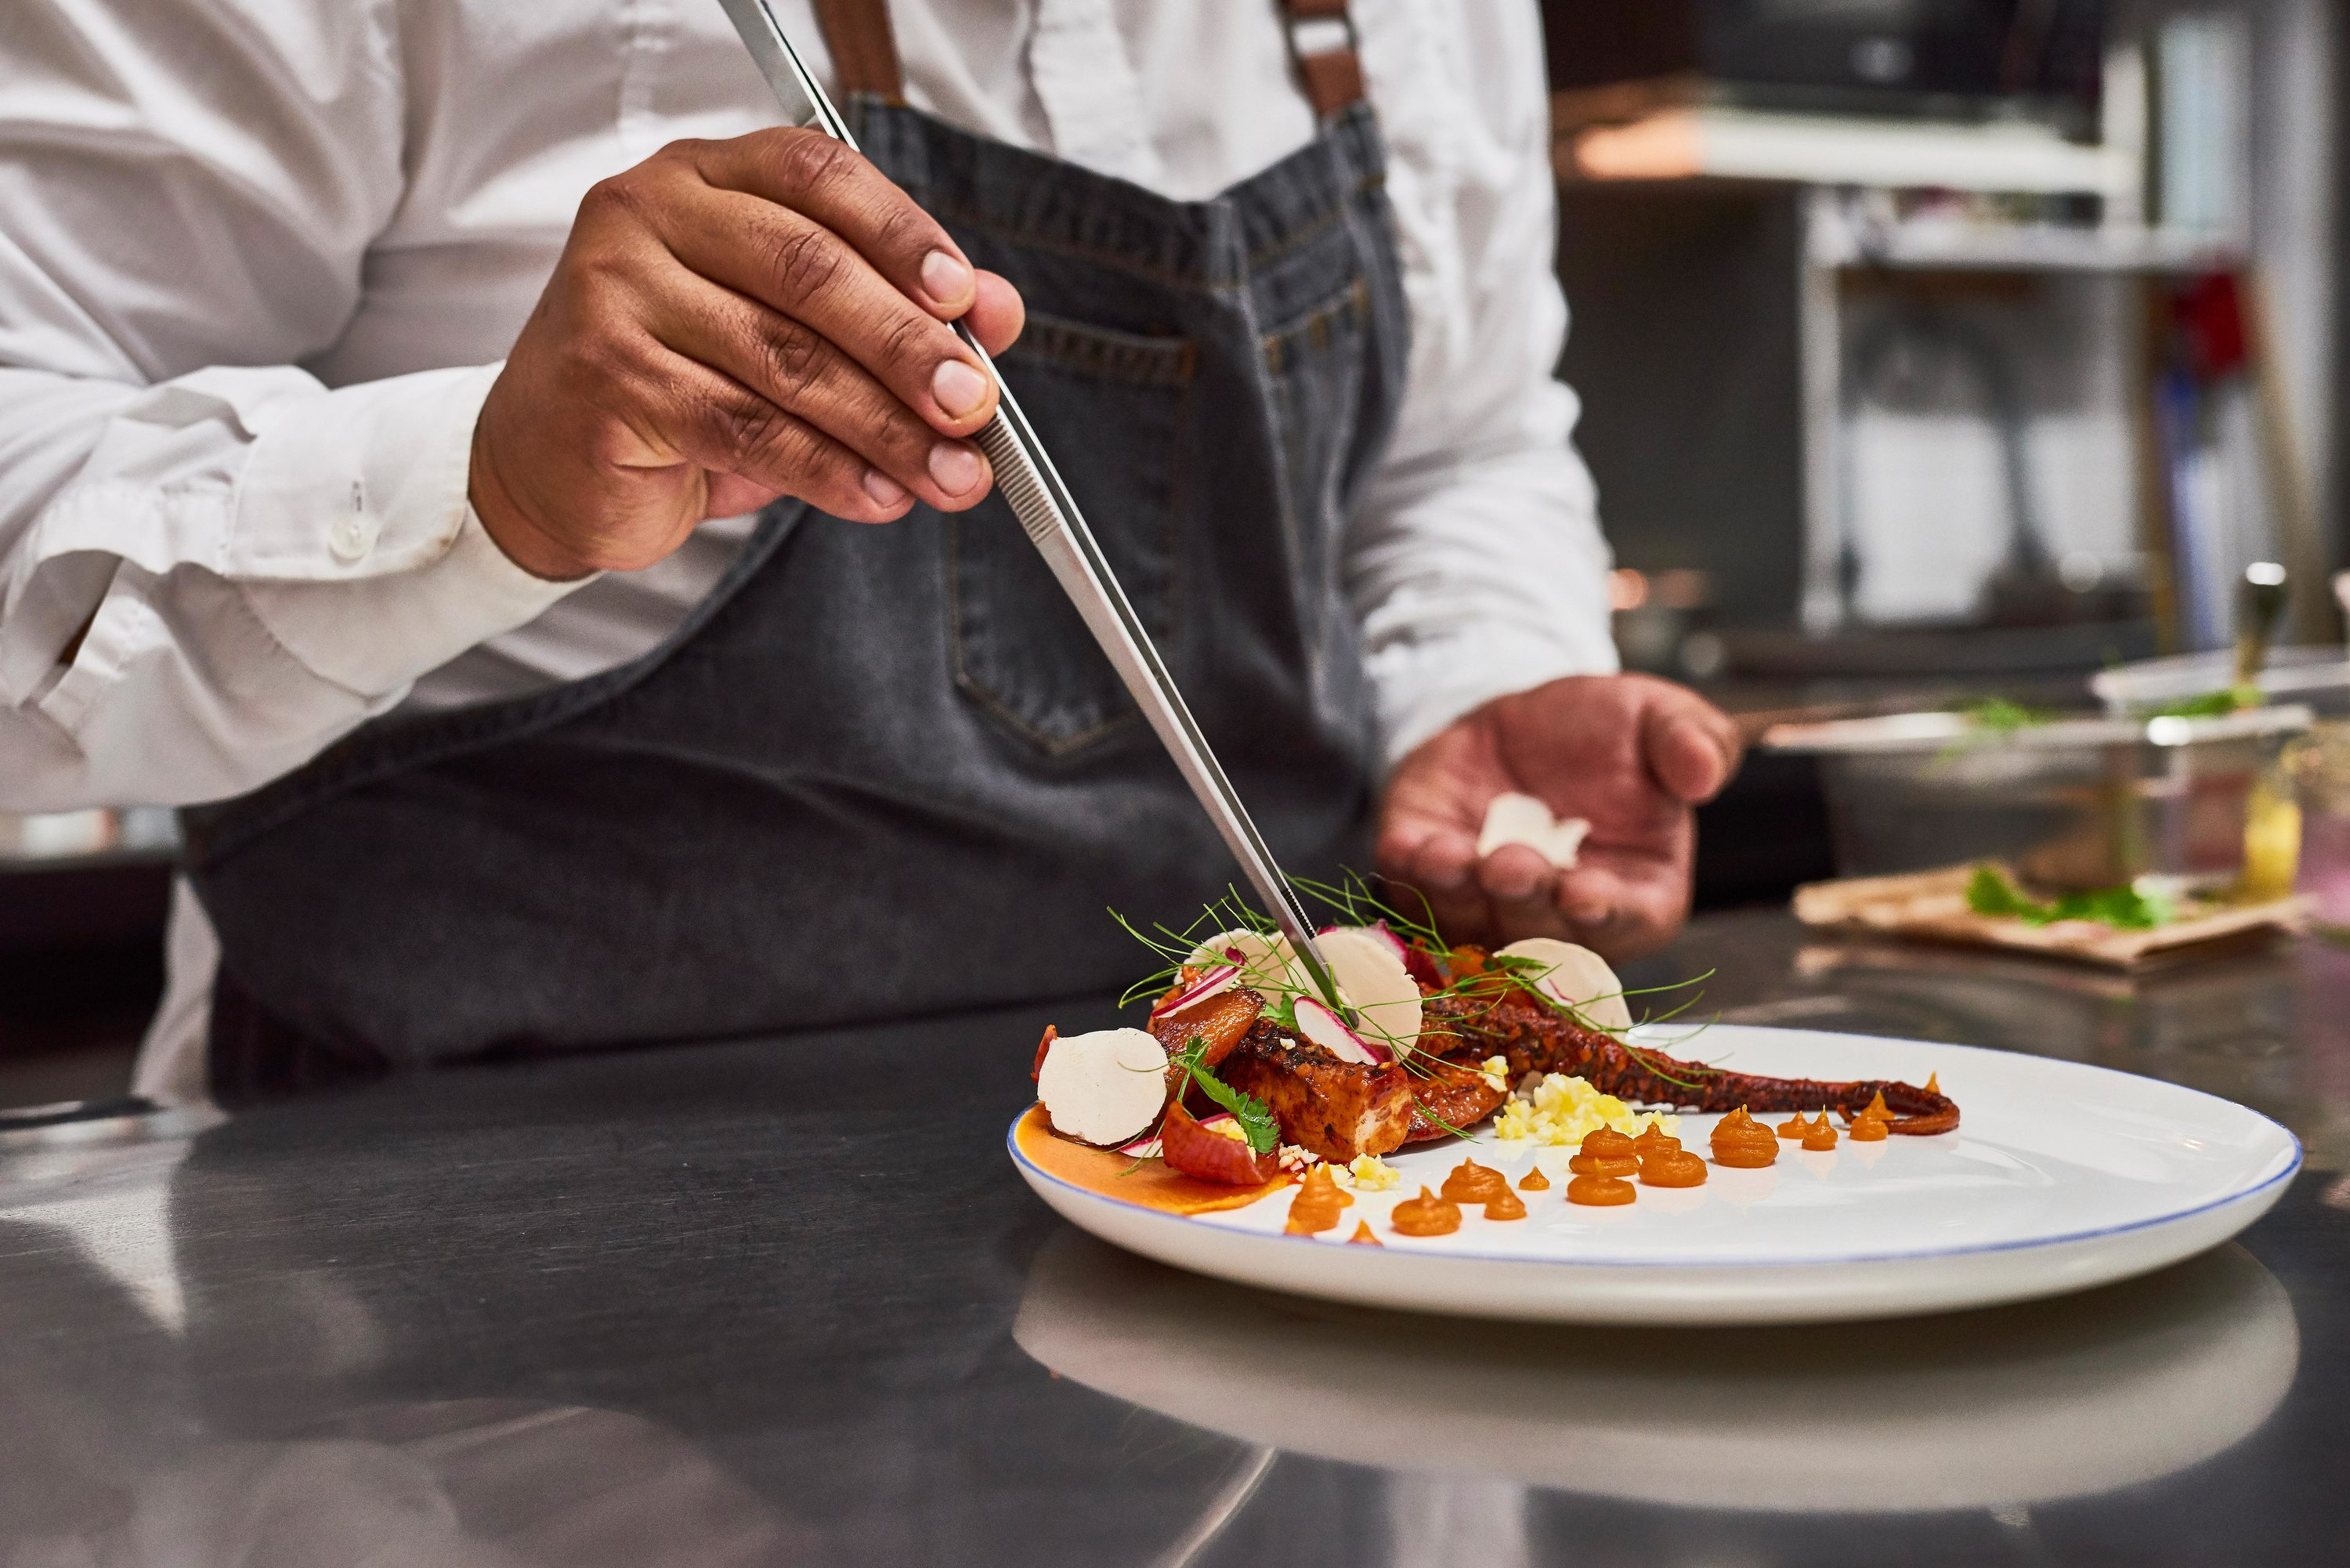 A $1 million fund for unemployed restaurant and hospitality workers